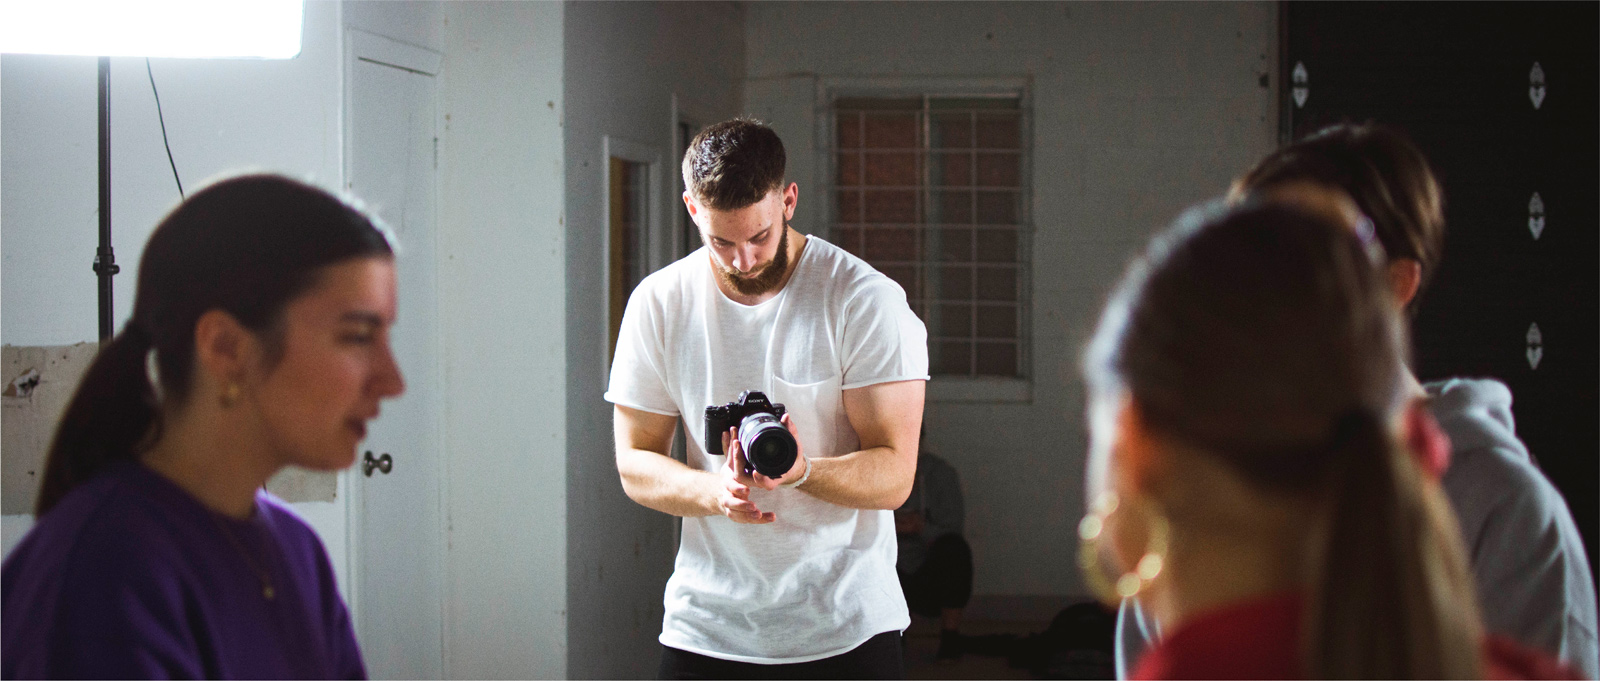 Man filming a group of people